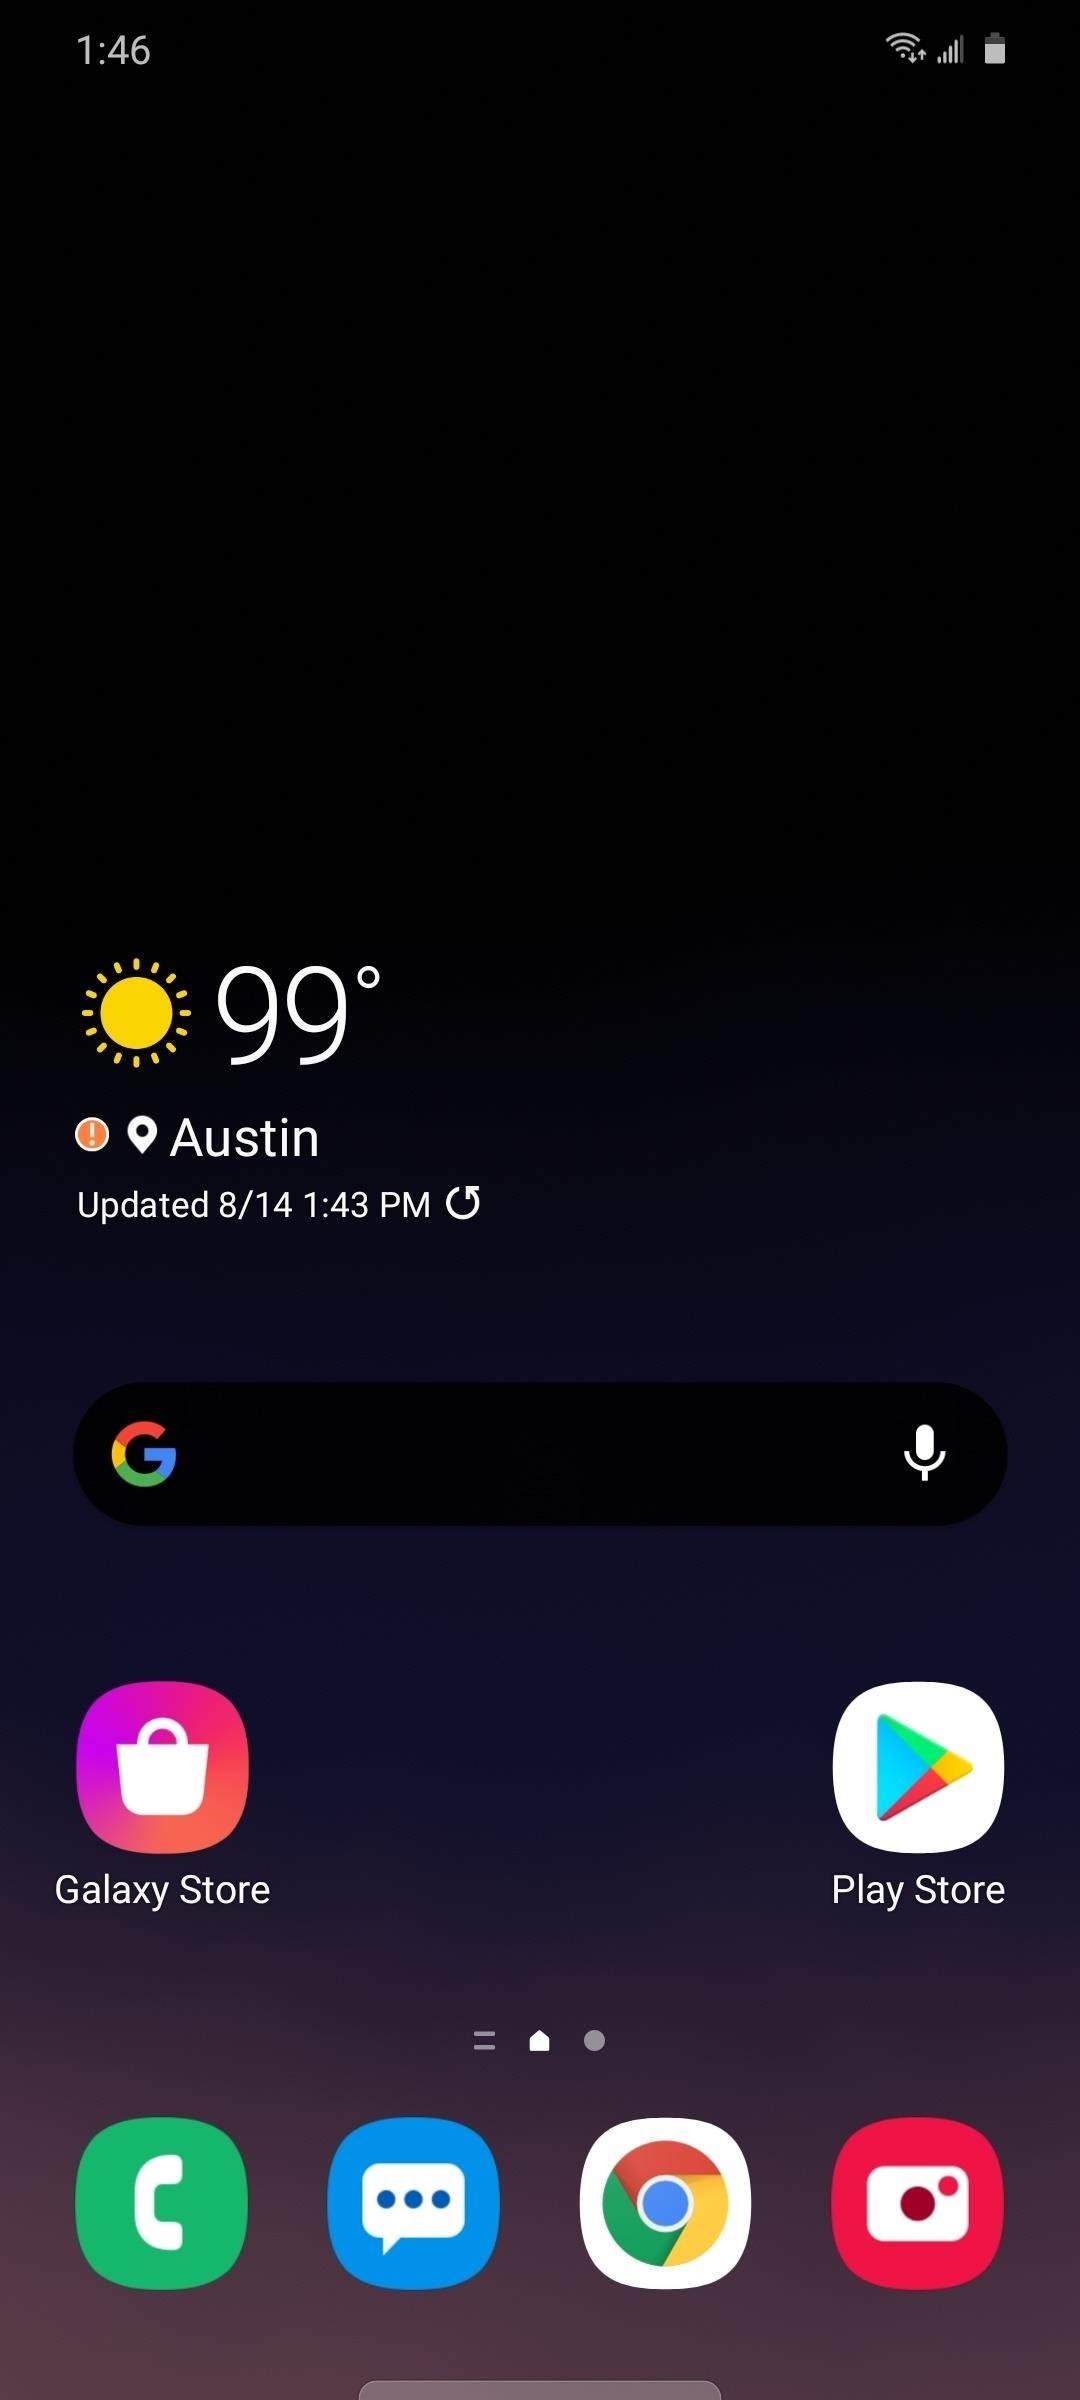 How to Get the Pixel 4a's New 'Eclipse' Live Wallpaper on Any Phone